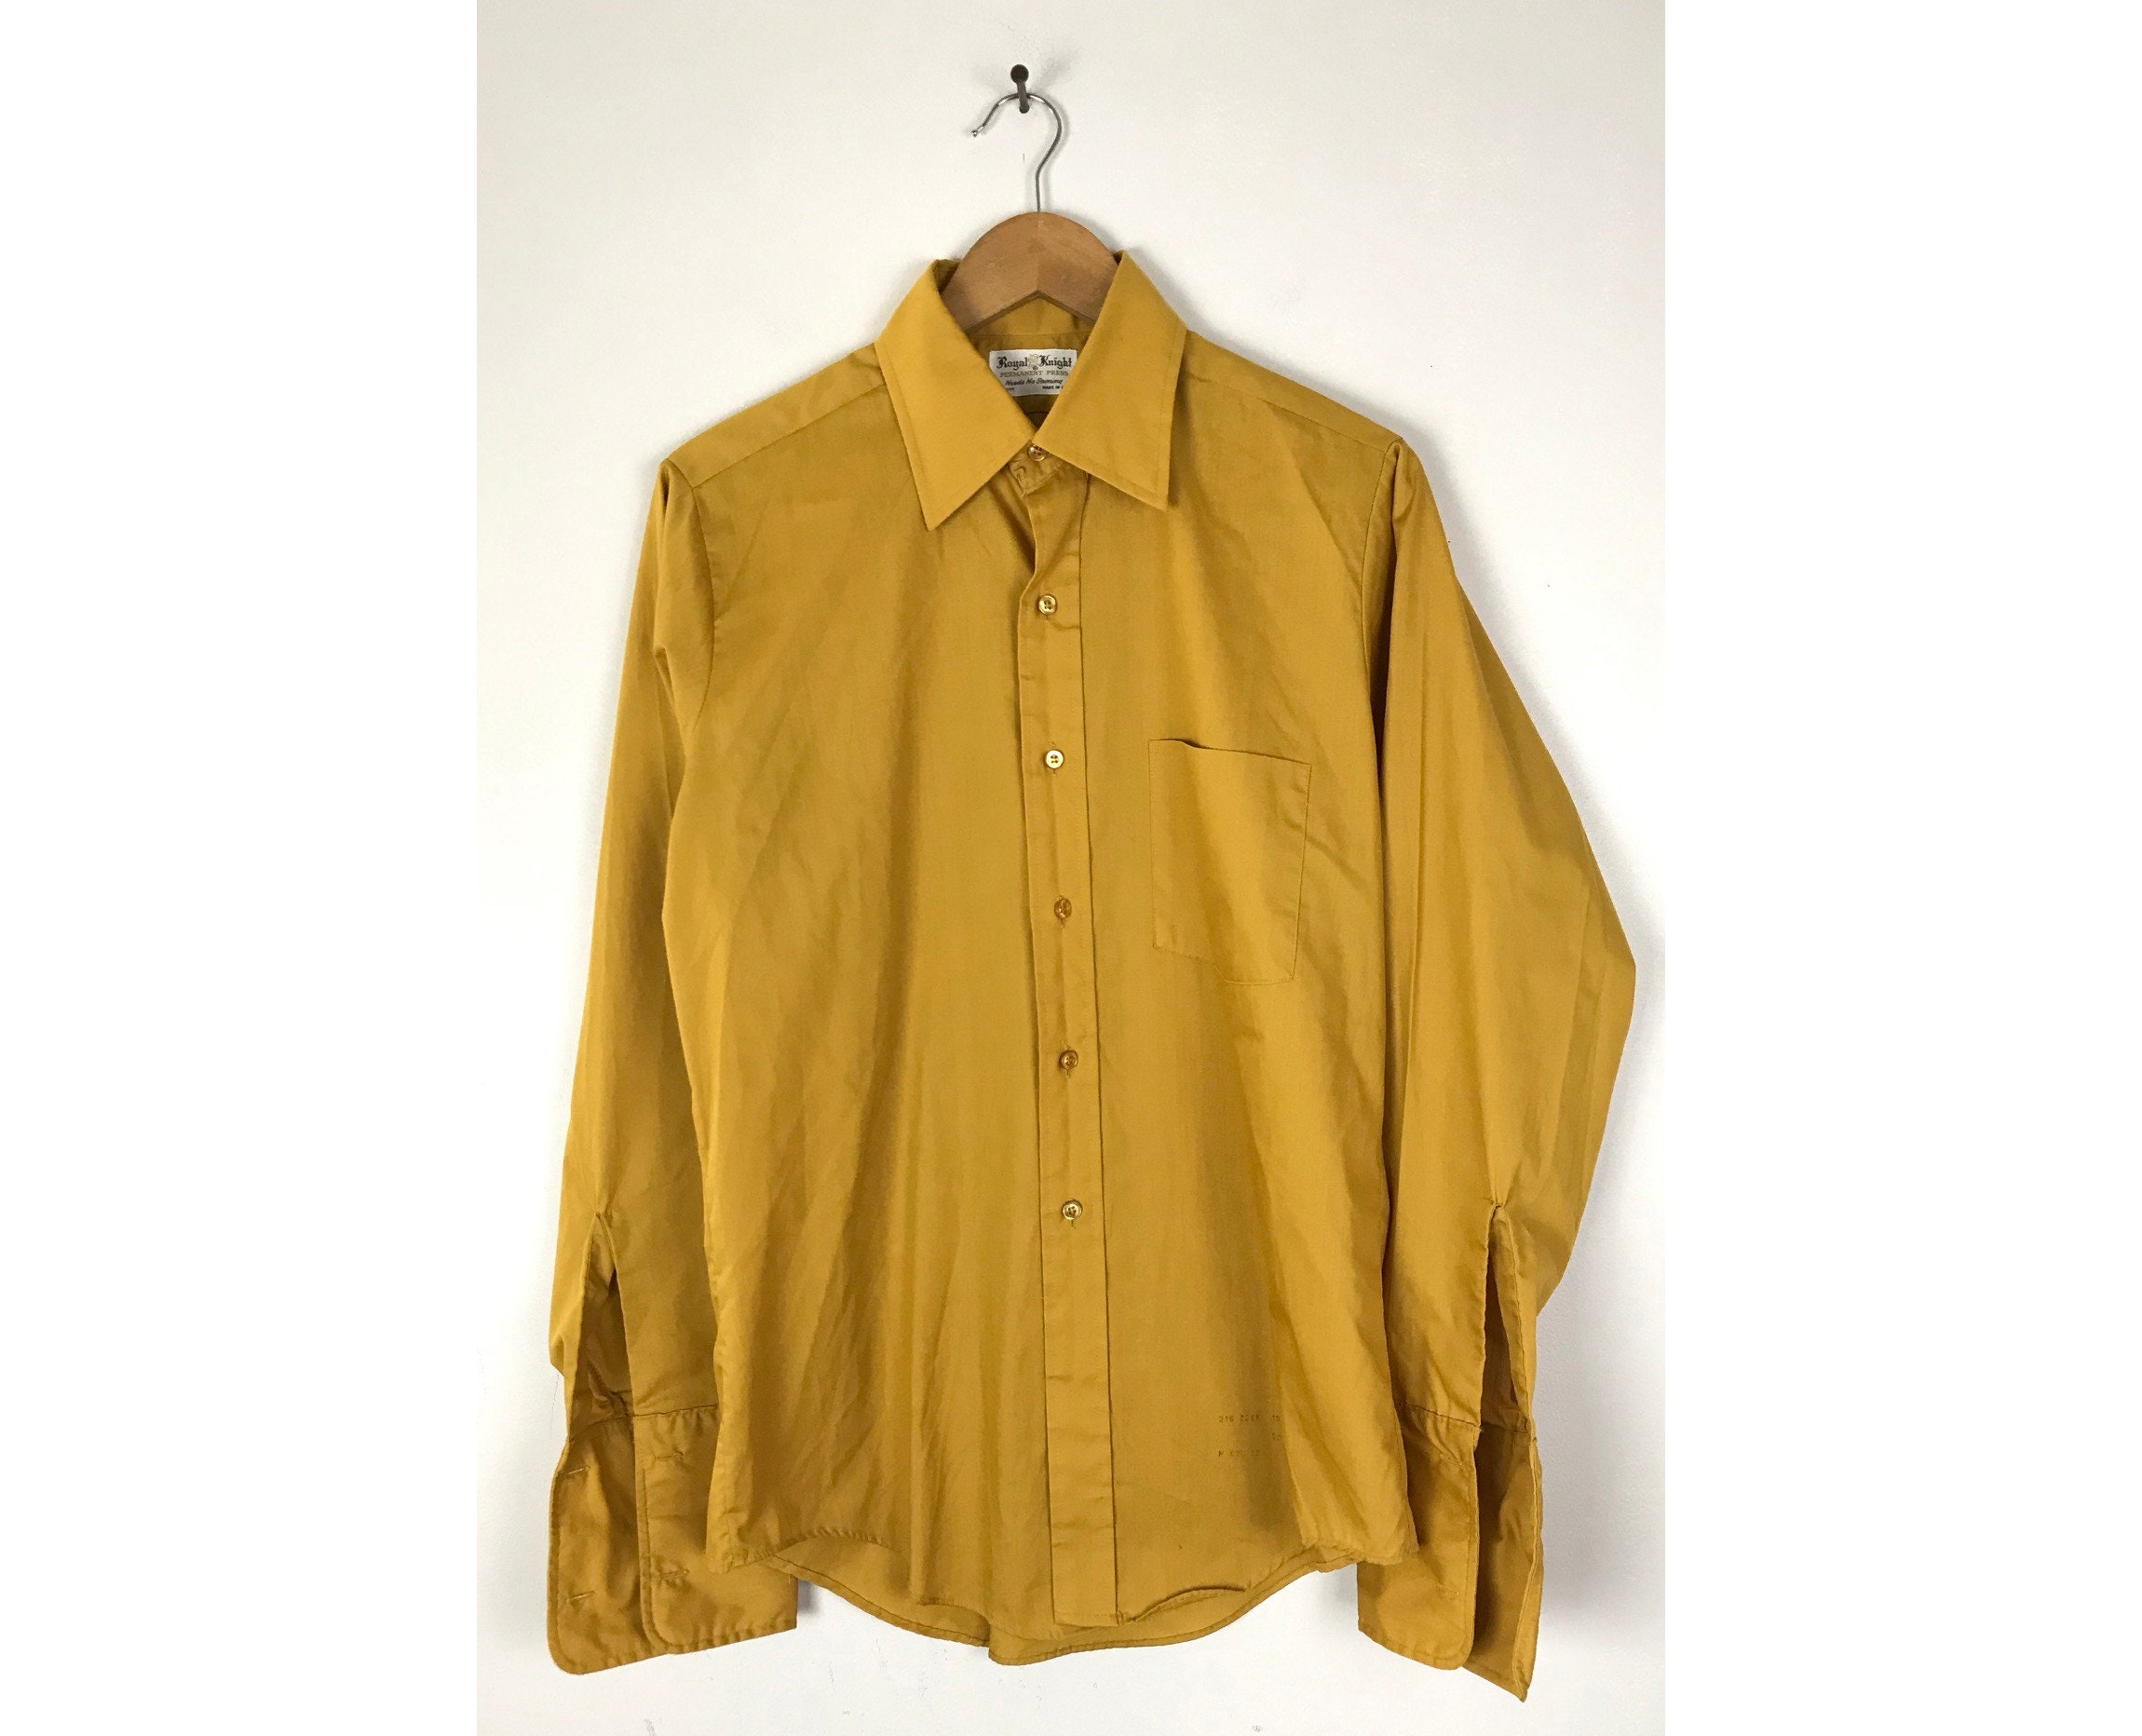 1970s Mens Shirt Styles – Vintage 70s Shirts for Guys 70S Mustard Yellow French Cuff Dress Shirt Mens Size 15 33 Medium, Vintage Formal Event Dressy Shirt, 1970S $26.00 AT vintagedancer.com